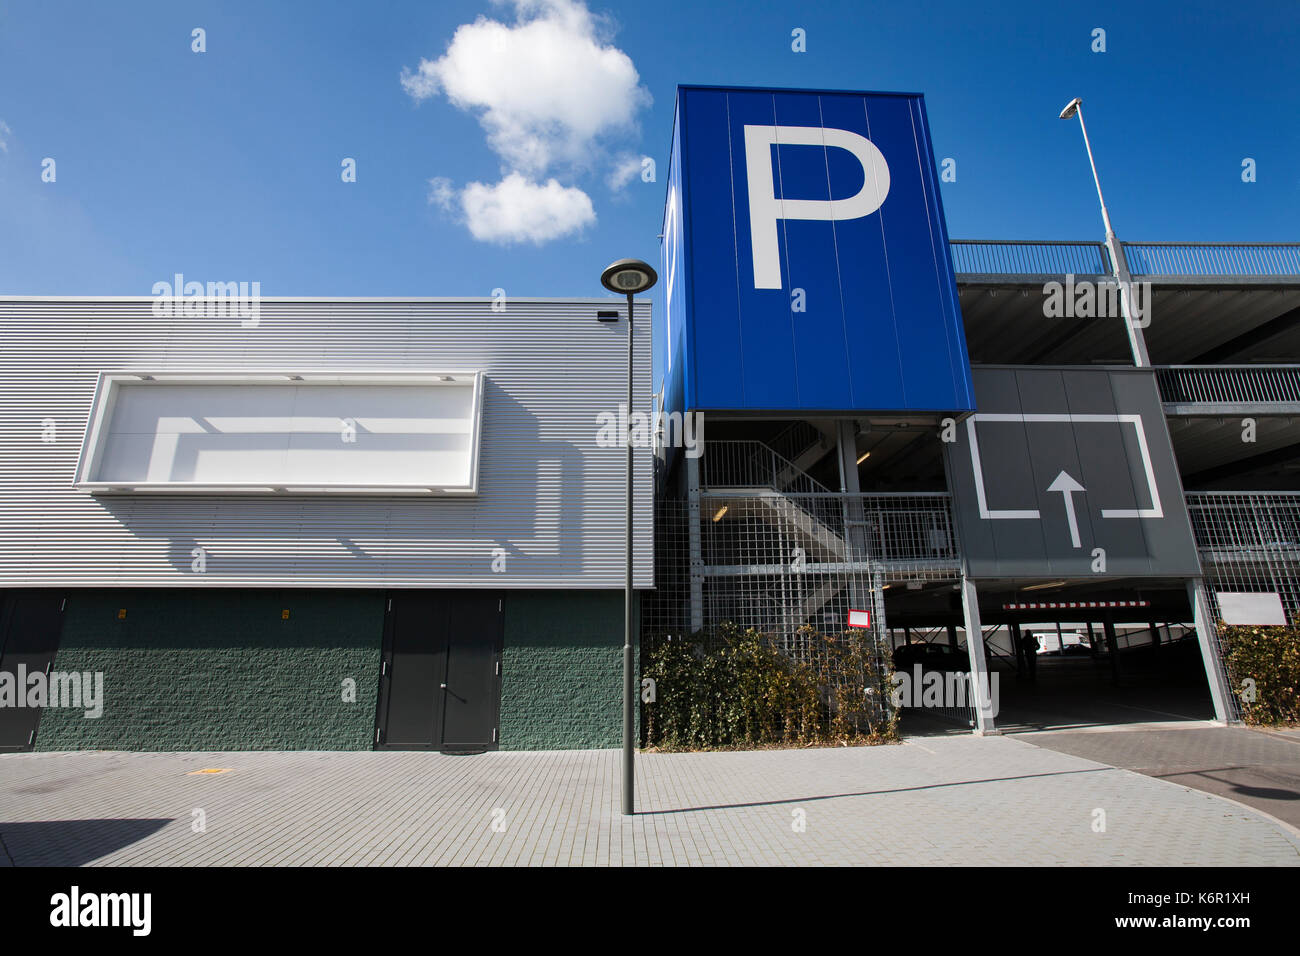 Blank billboard on a parking garage in Gouda. It's a public building with the entrance at the right side. A huge blue parking sign with a white P - Stock Image